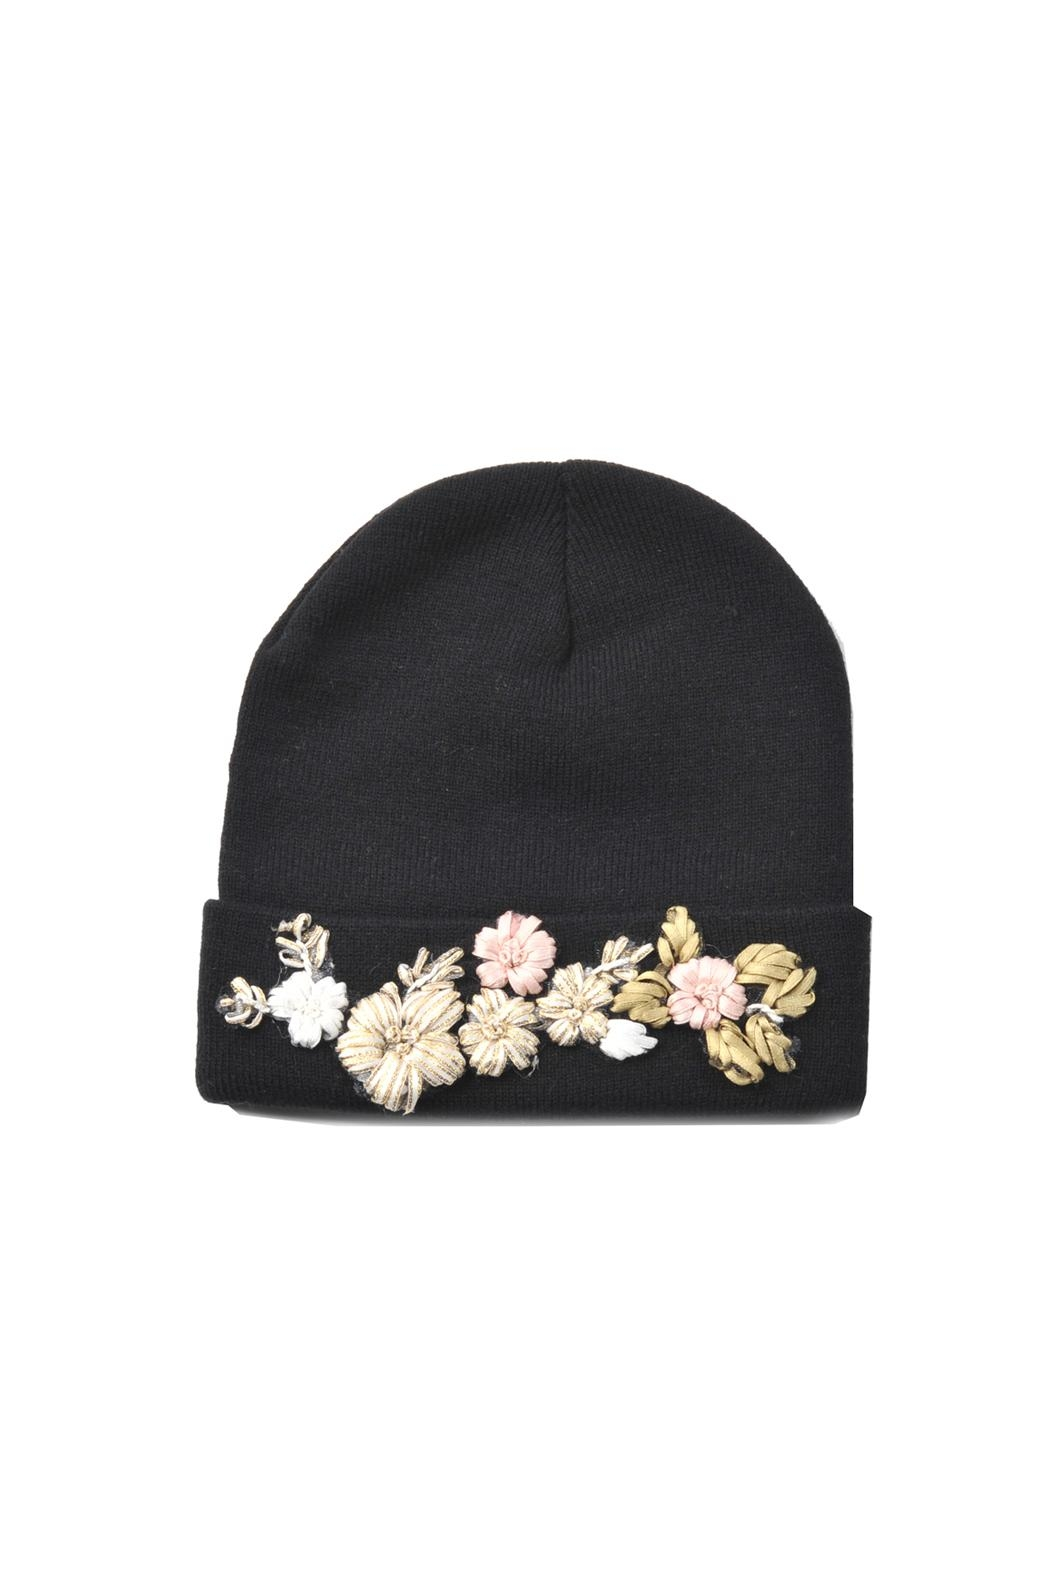 Something Special Floral Embroidery Bennie - Main Image